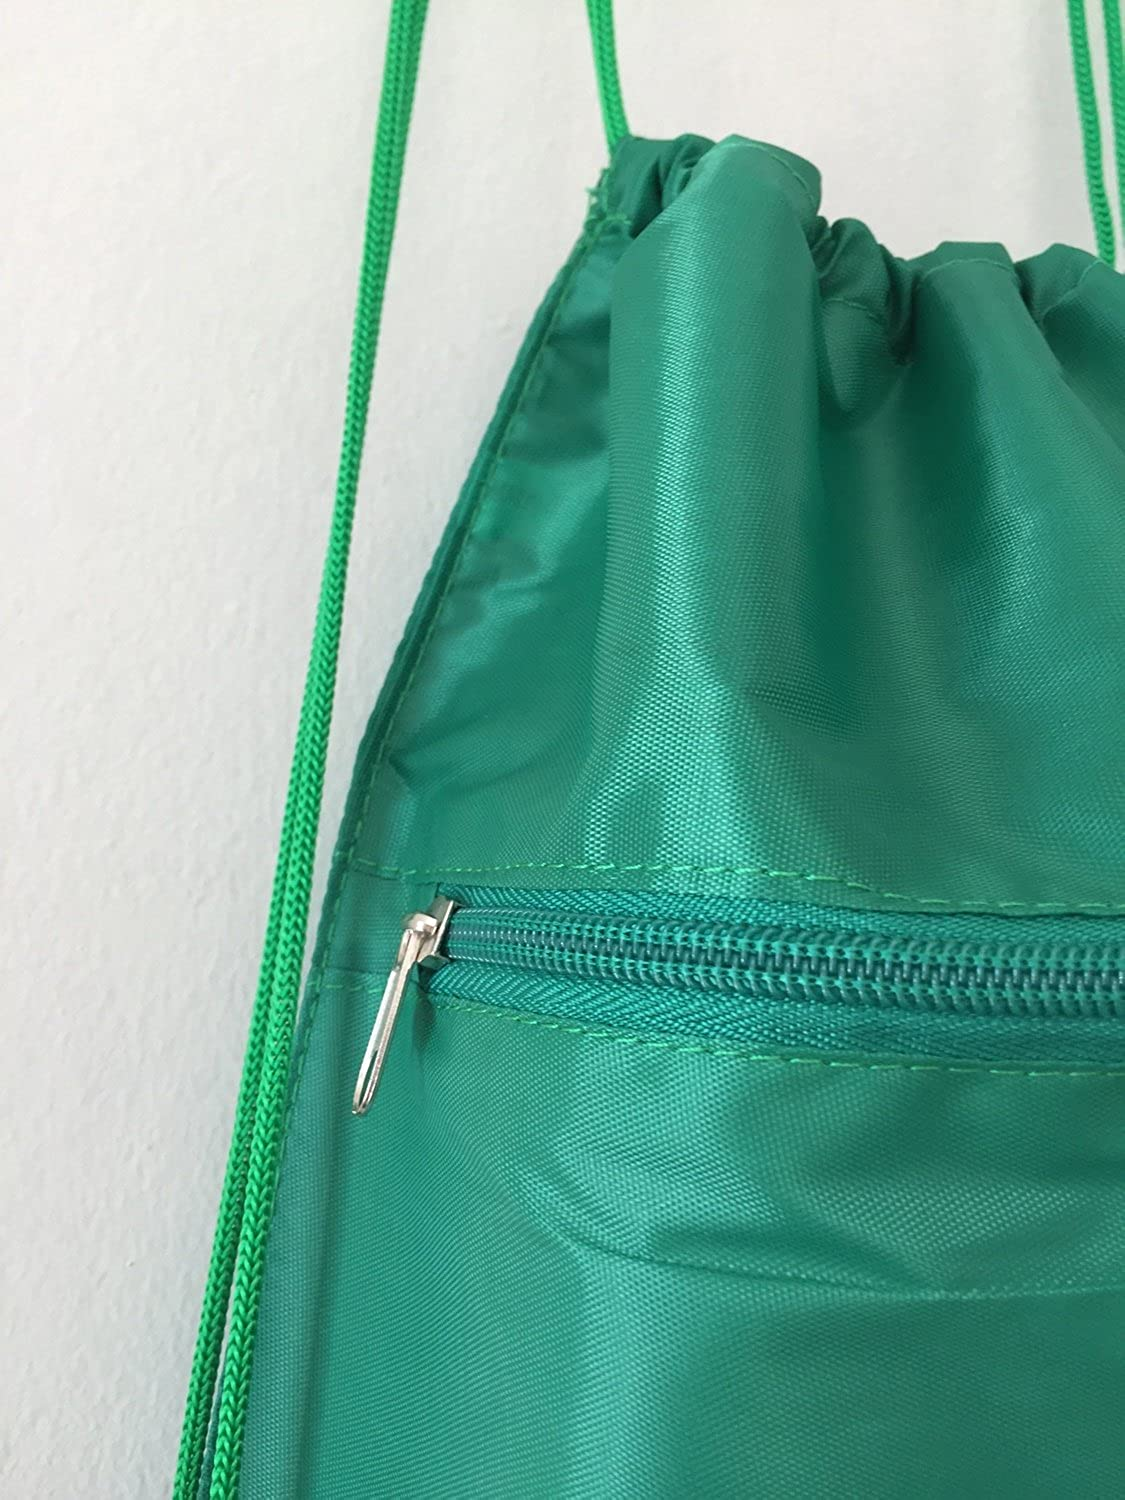 Set of 12 Kelly Green 12 Pack Economical Drawstring Polyester Backpack with Front Pocket